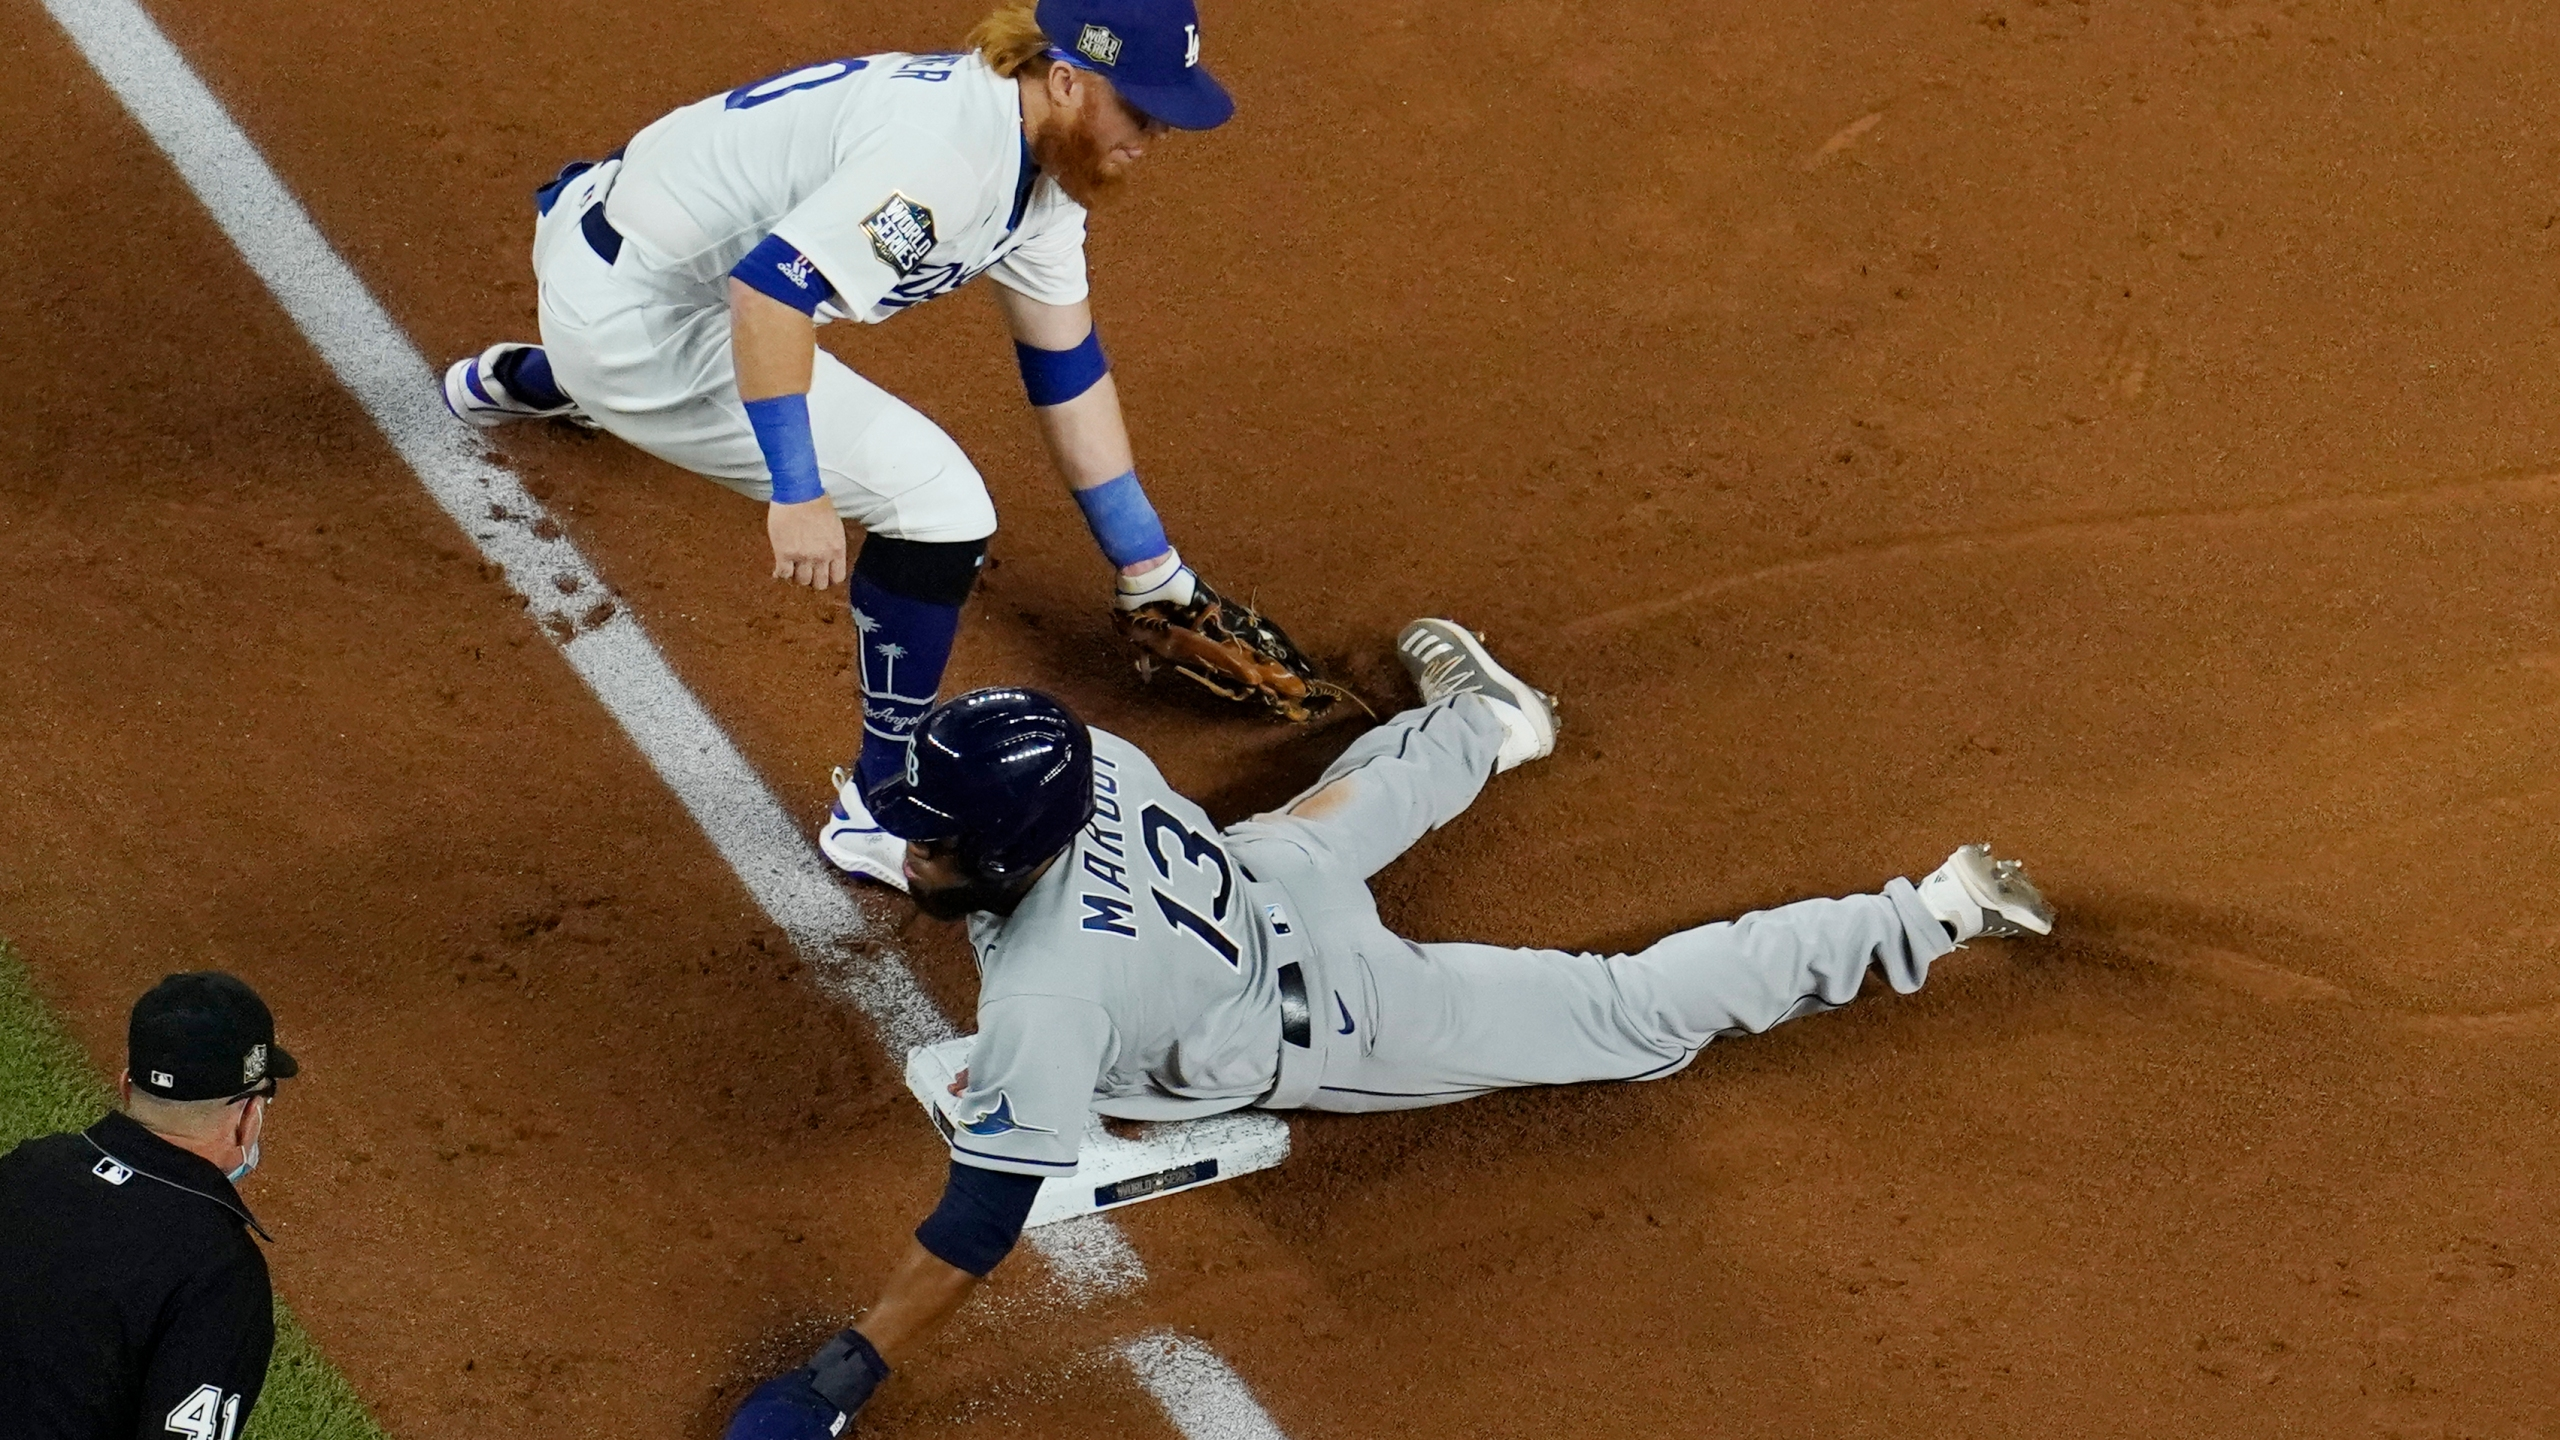 Tampa Bay Rays' Manuel Margot is safe at third past Los Angeles Dodgers third baseman Justin Turner on a ball hit by Joey Wendle during Game 2 of the World Series on Oct. 21, 2020, in Arlington, Texas. (David J. Phillip / Associated Press)